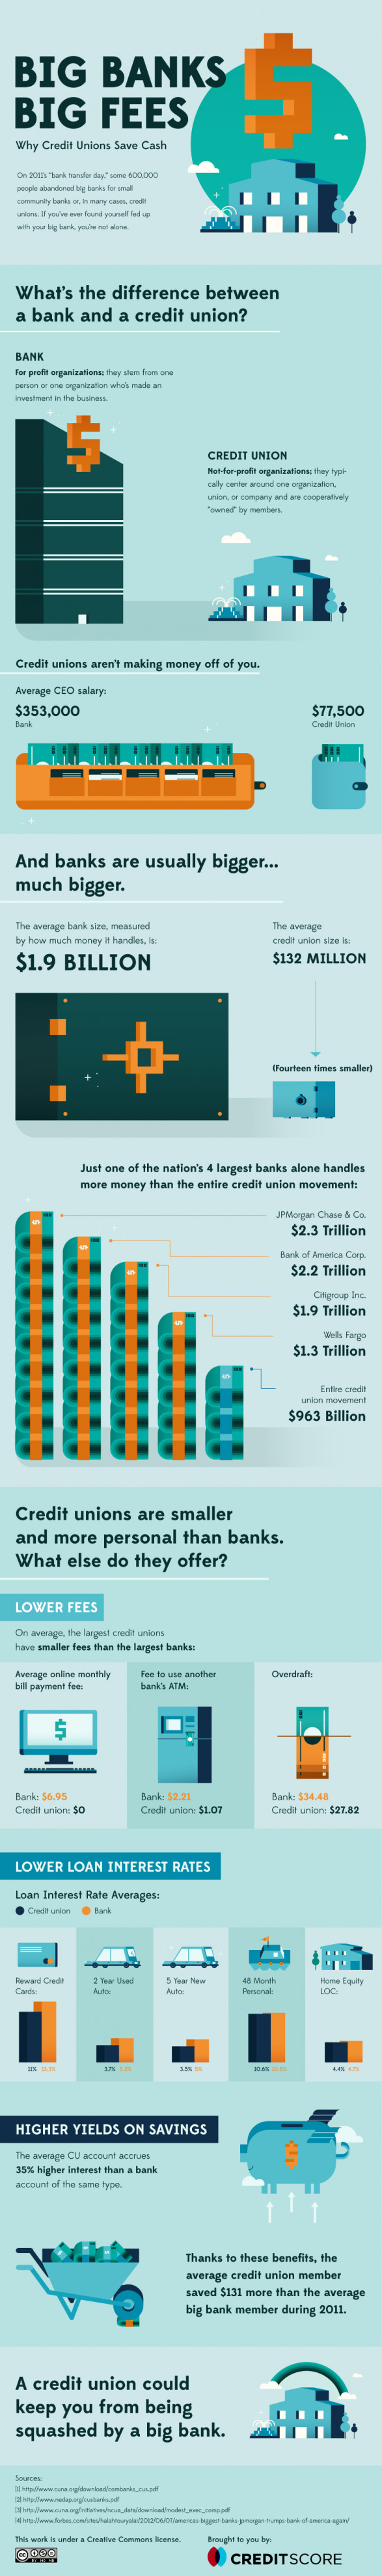 Big Banks, Big Fees